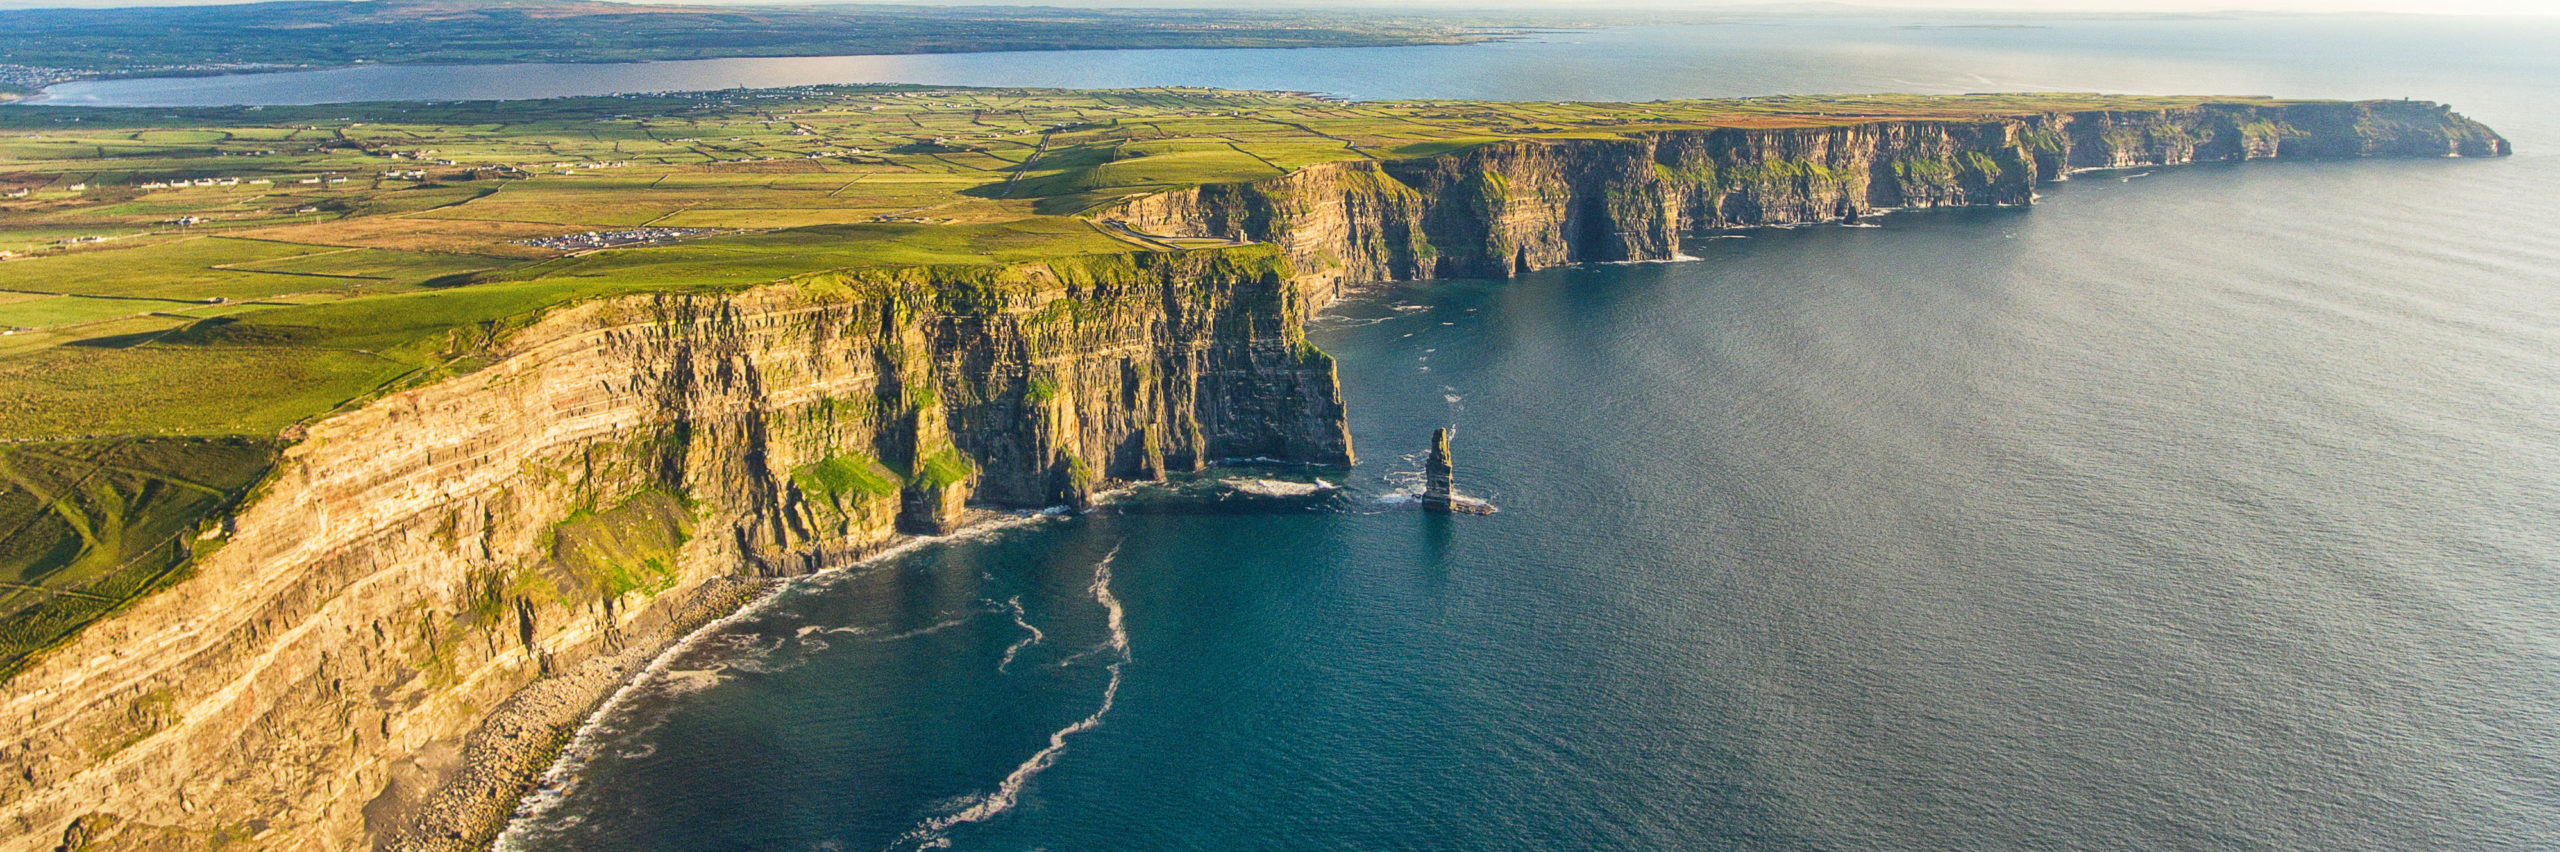 Aerial birds eye drone view from the world famous cliffs of moher in county clare ireland. Scenic Irish rural countryside nature along the wild atlantic way and European Atlantic Geotourism Route - Image [Shutterstock]